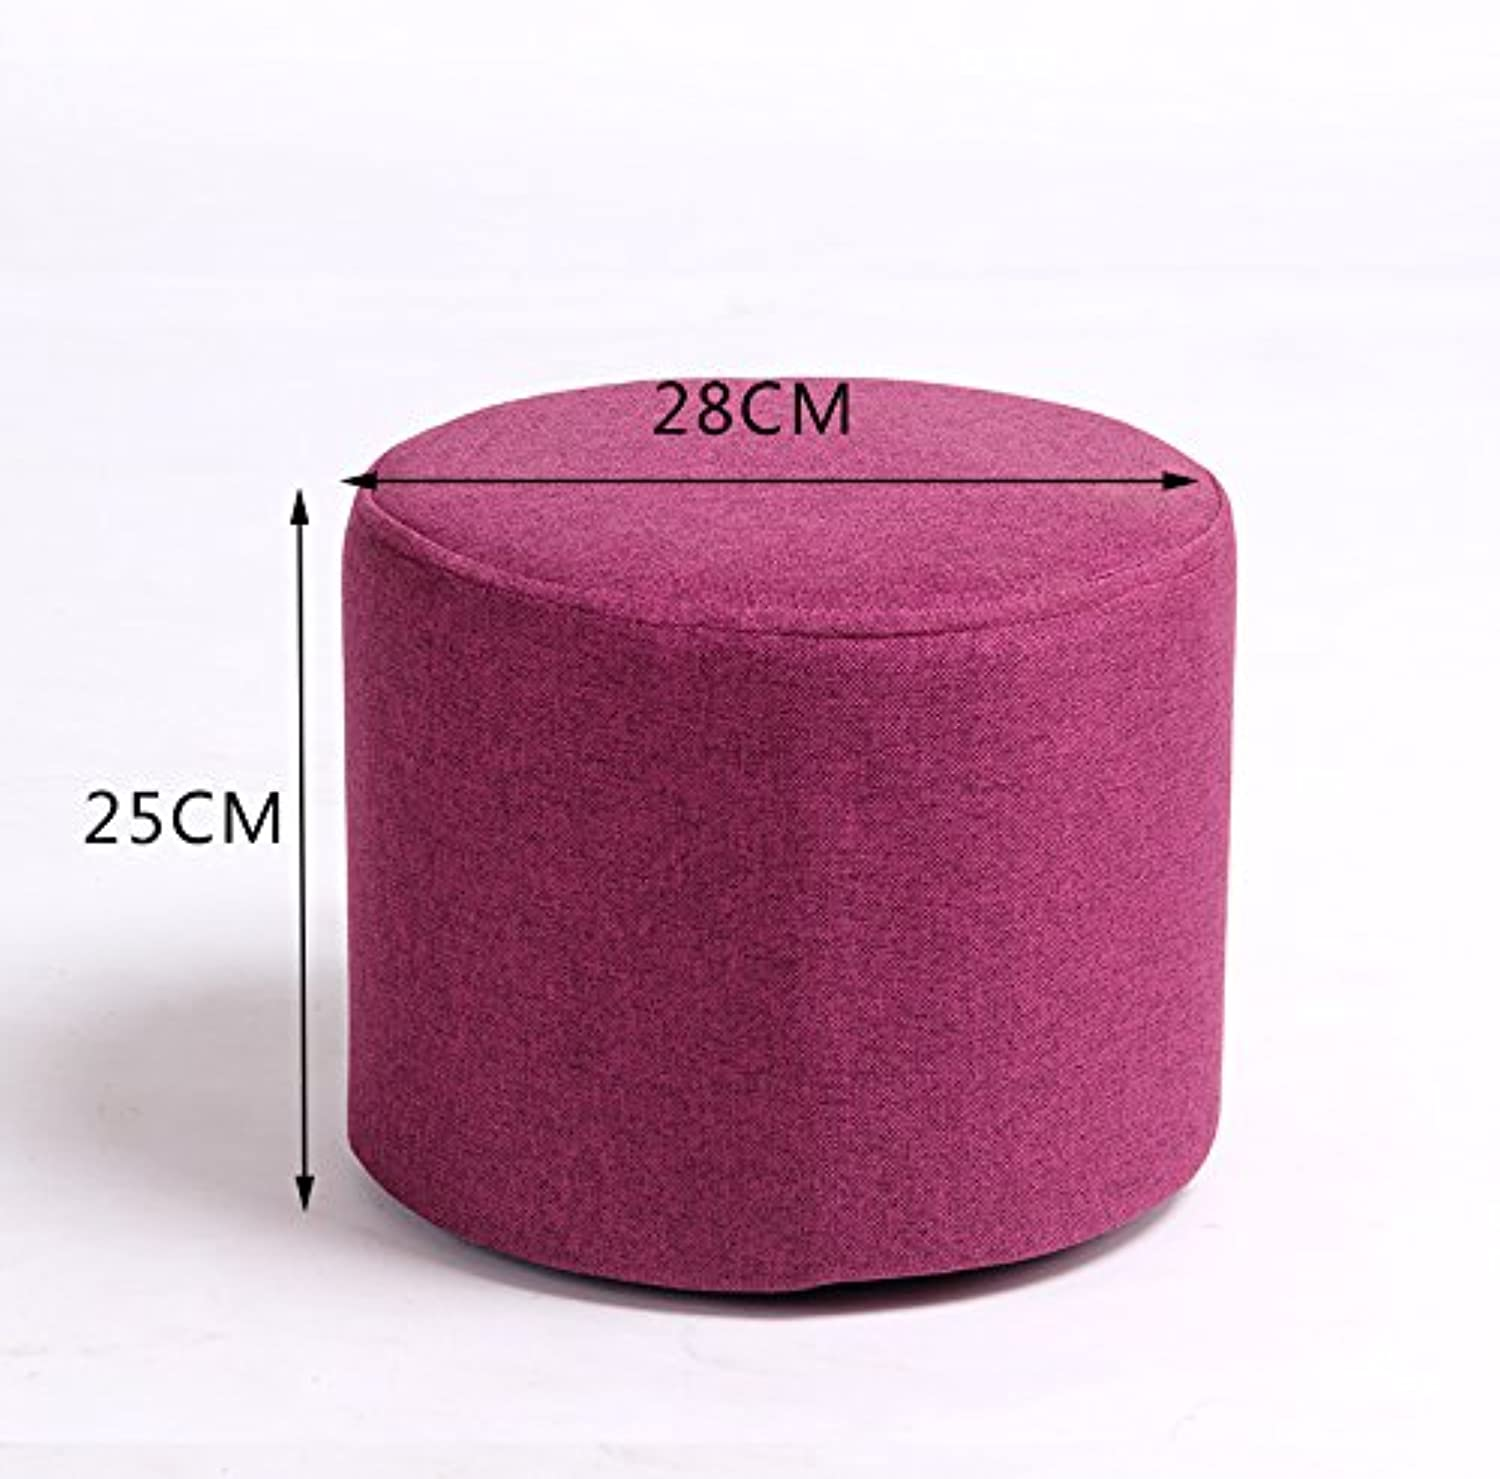 Dana Carrie Stool Stylish Ideas for shoes of Solid Wood Cloth Sofas stools Low stool Round stool wear shoes The Tea Small stools Benches sit Mounds of Deep purple 25  28cm